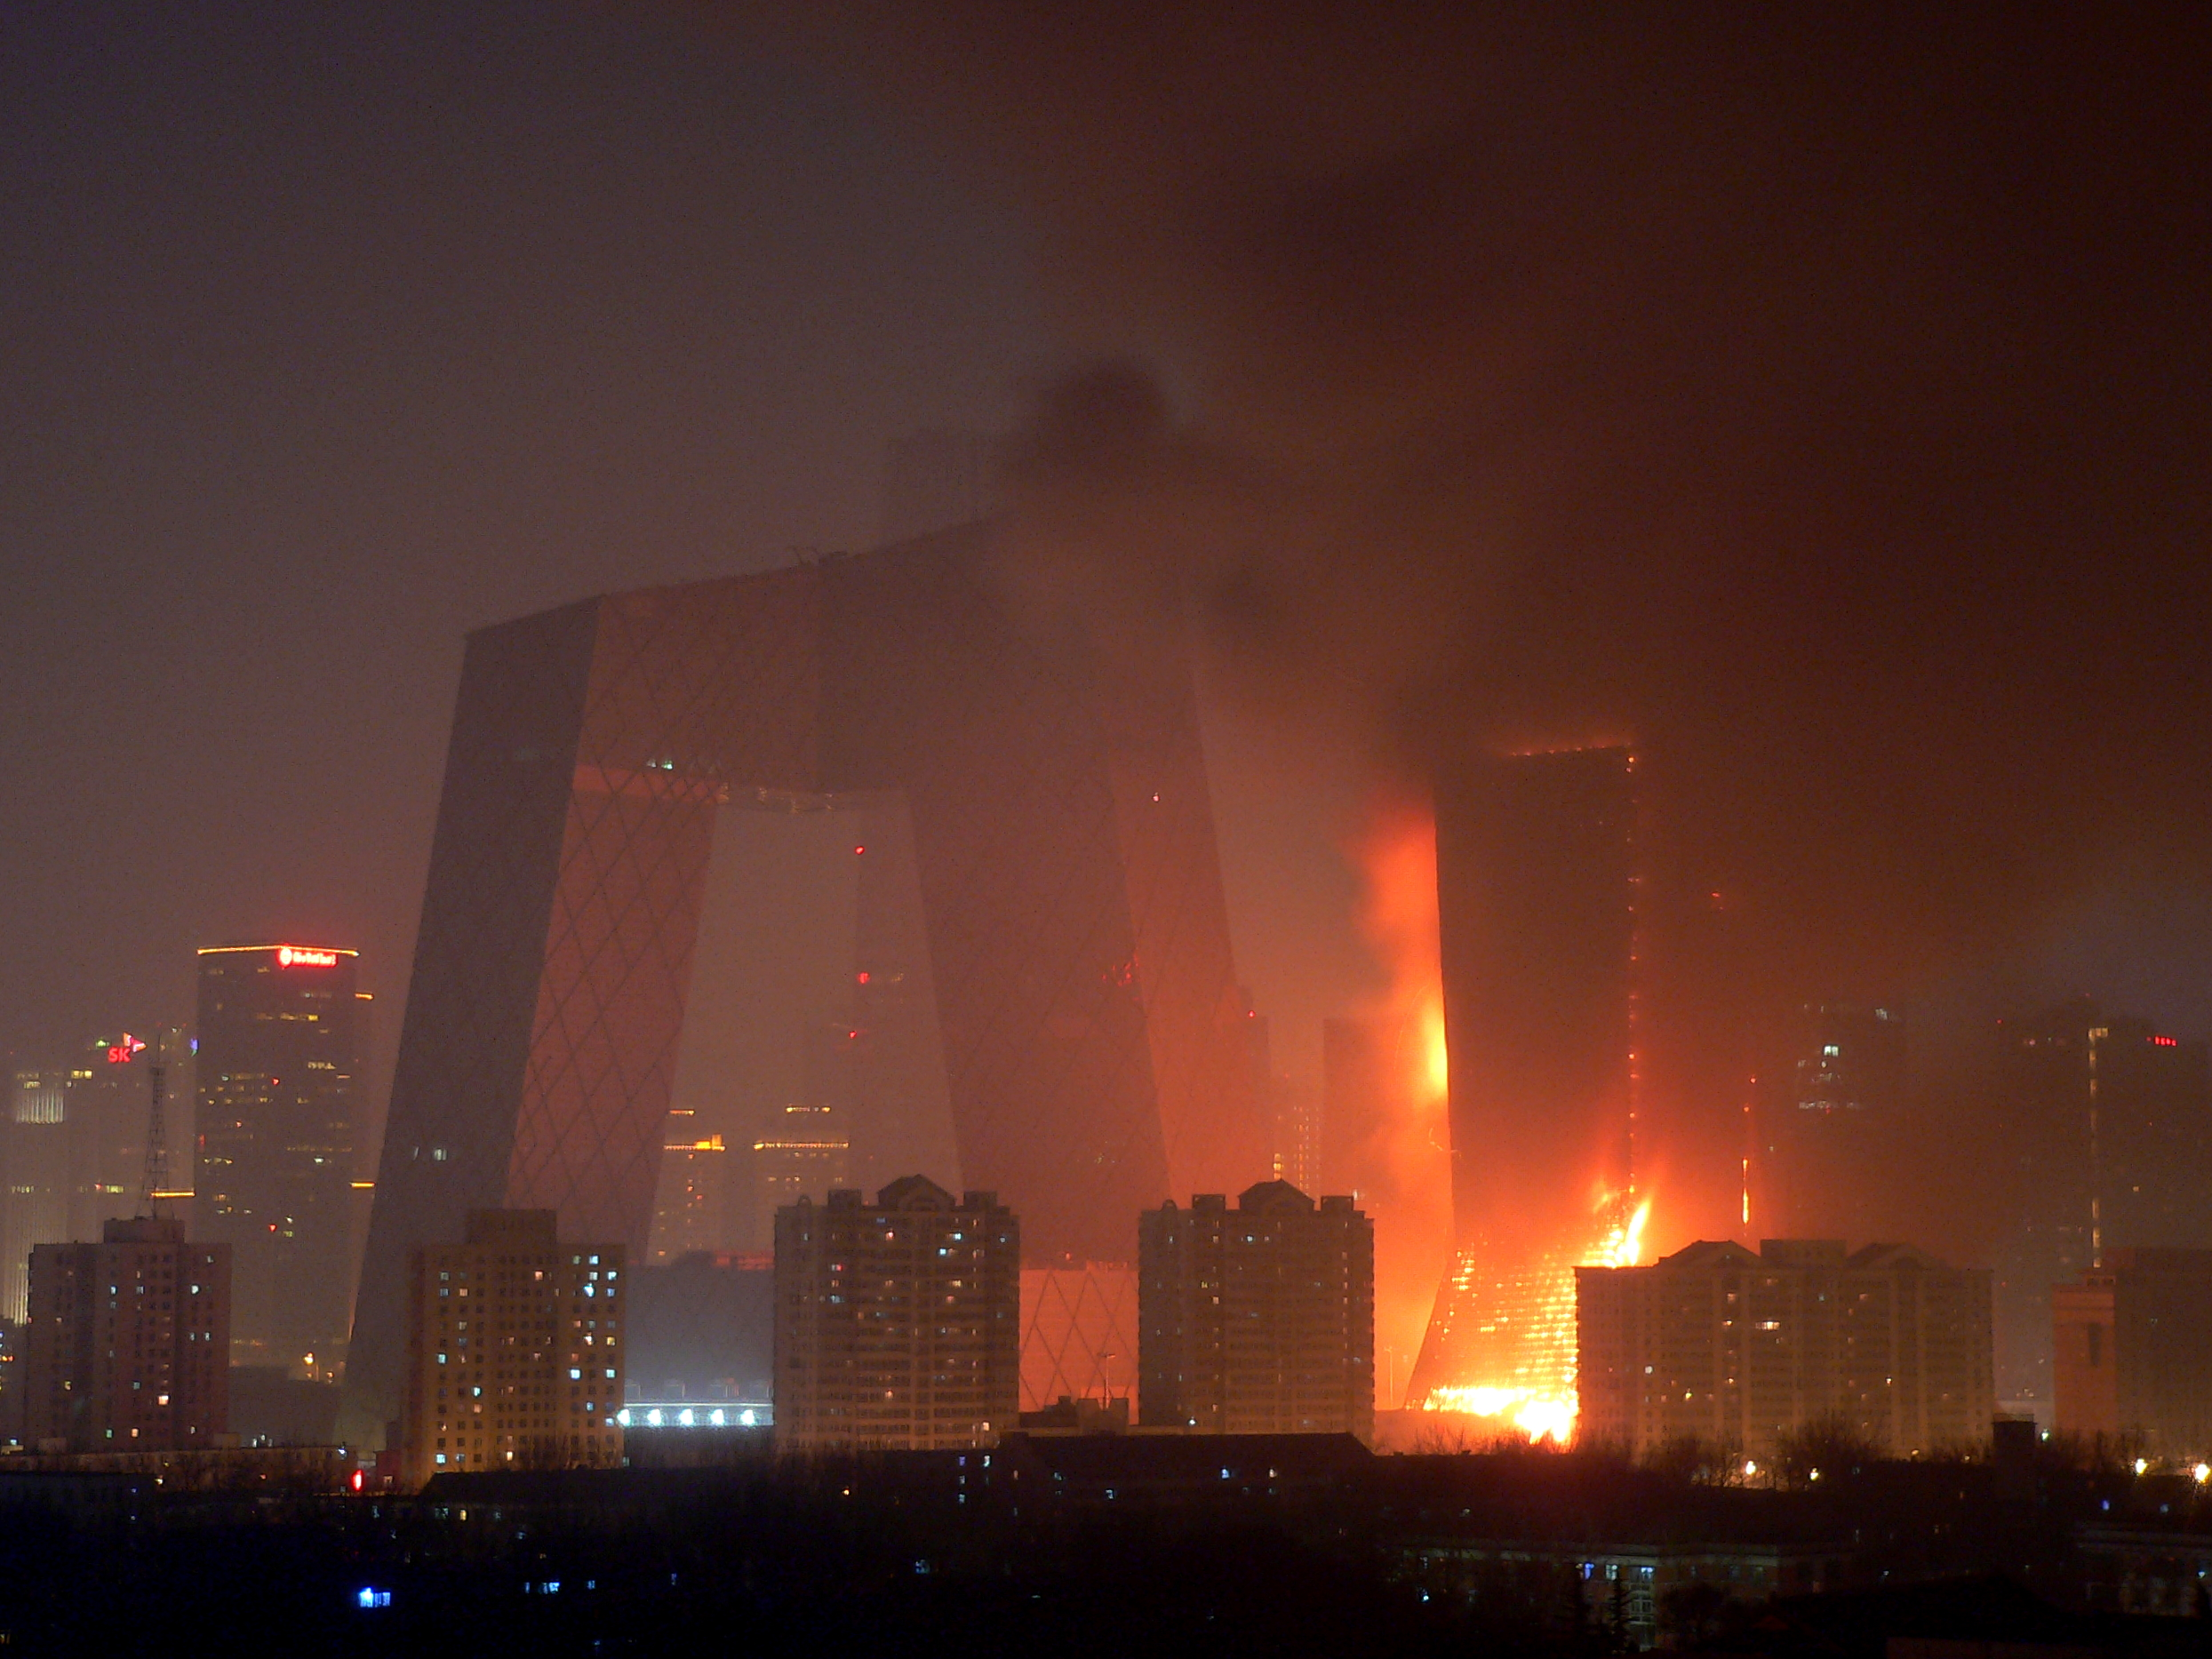 http://upload.wikimedia.org/wikipedia/commons/6/6e/CCTV_new_headquarters_Fire_20090209.jpg